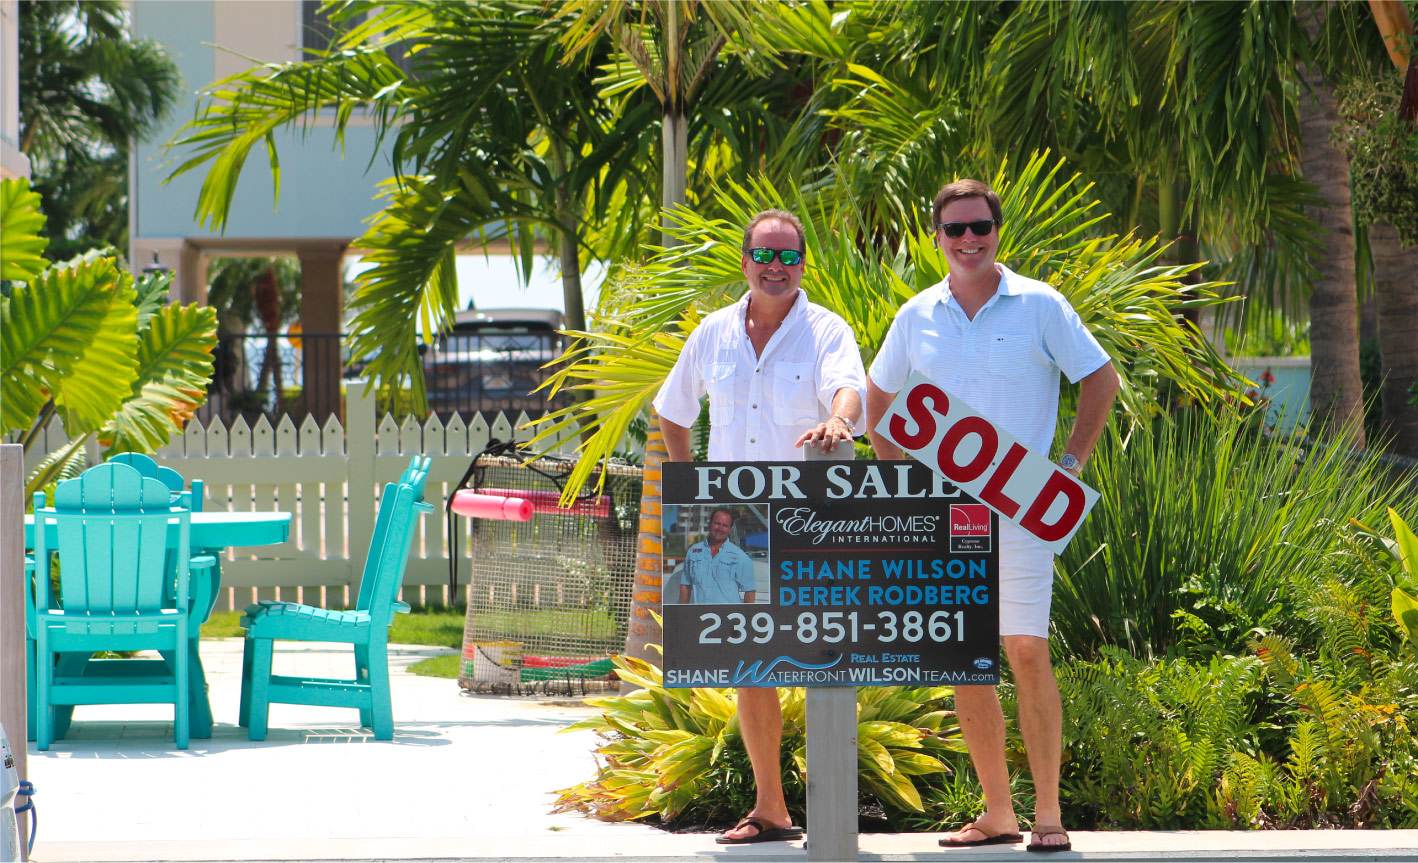 Shane WIlson and Derek Rodberg with sold property sign in the Florida Keys